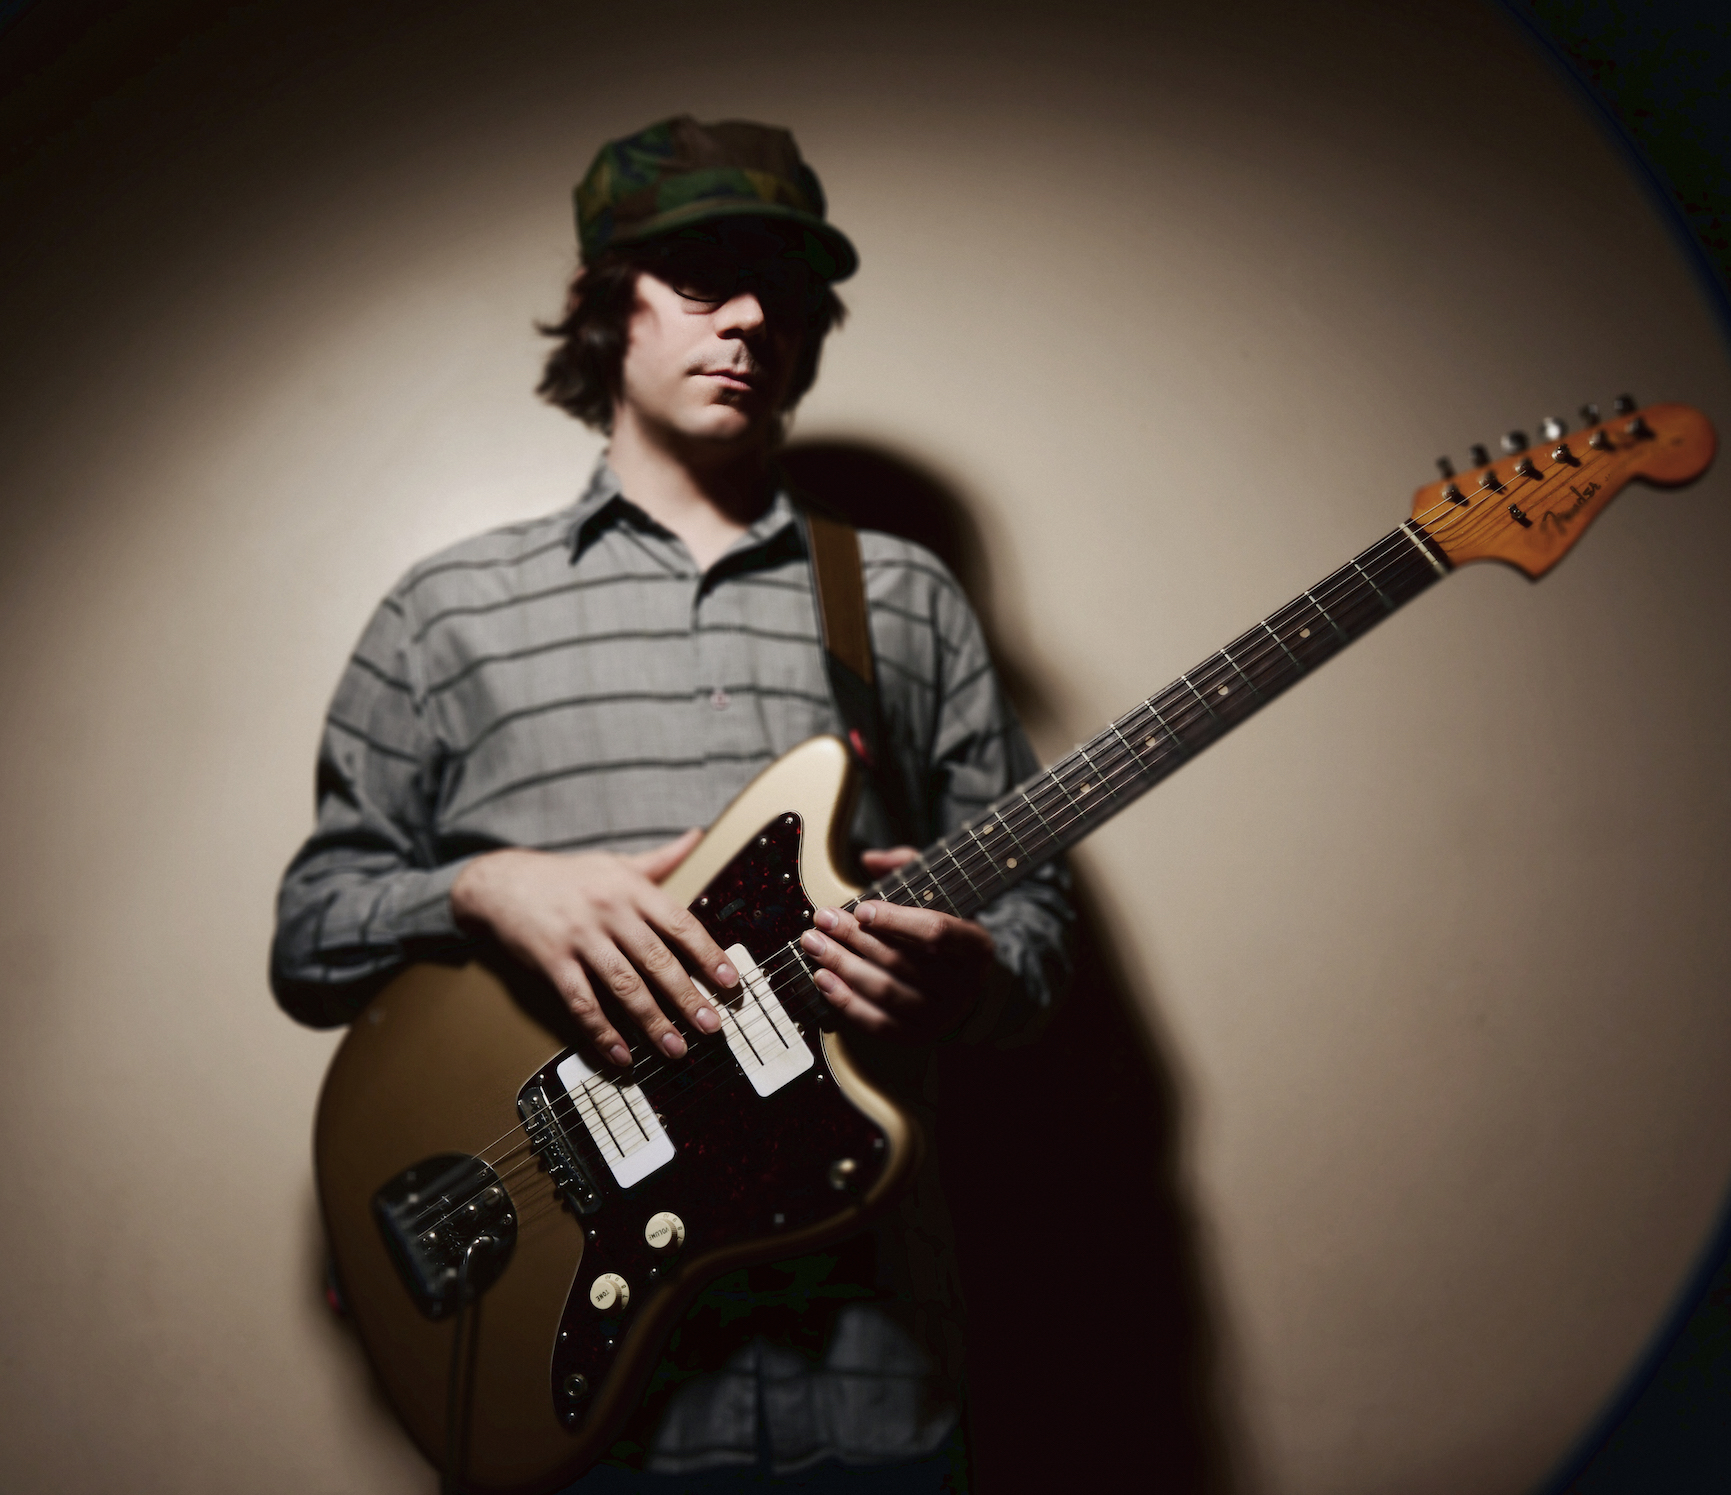 "Anthony Pirog - Anthony Pirog is making his mark on the guitar playing universe, one sonically enthralling, diversely influenced project after another. From his work on Janel and Anthony's ""Where is Home,"" described in Guitar Player Magazine as ""approachable experimentalism,"" to what AllMusic described as ""pristinely executed rock guitar solos"" with Skysaw, Anthony displays a ""crystalline tone that's immediately recognizable as his own"" in his ever-evolving conception of how a guitar can sound.Anthony has played with musicians across a wide spectrum of styles and genres. He has performed with renowned avant jazzers such as Ben Monder, David Torn, Henry Kaiser, Elliot Sharp, Michael Formanek, Ches Smith, Mary Halvorson, William Hooker, William Parker, Eyvind Kang, Skuli Sverrisson, Allison Miller, Jon Irabagon, Doug Weiselman, Susan Alcorn, Dave Ballou, Andrew Bishop, Balázs Pándi, Gino Robair, Tatsuya Nakatani, James Brandon Lewis,  Jessika Kenney and played in myriad jazz, electronic and improvisational groups up and down the East Coast.More about Anthony"